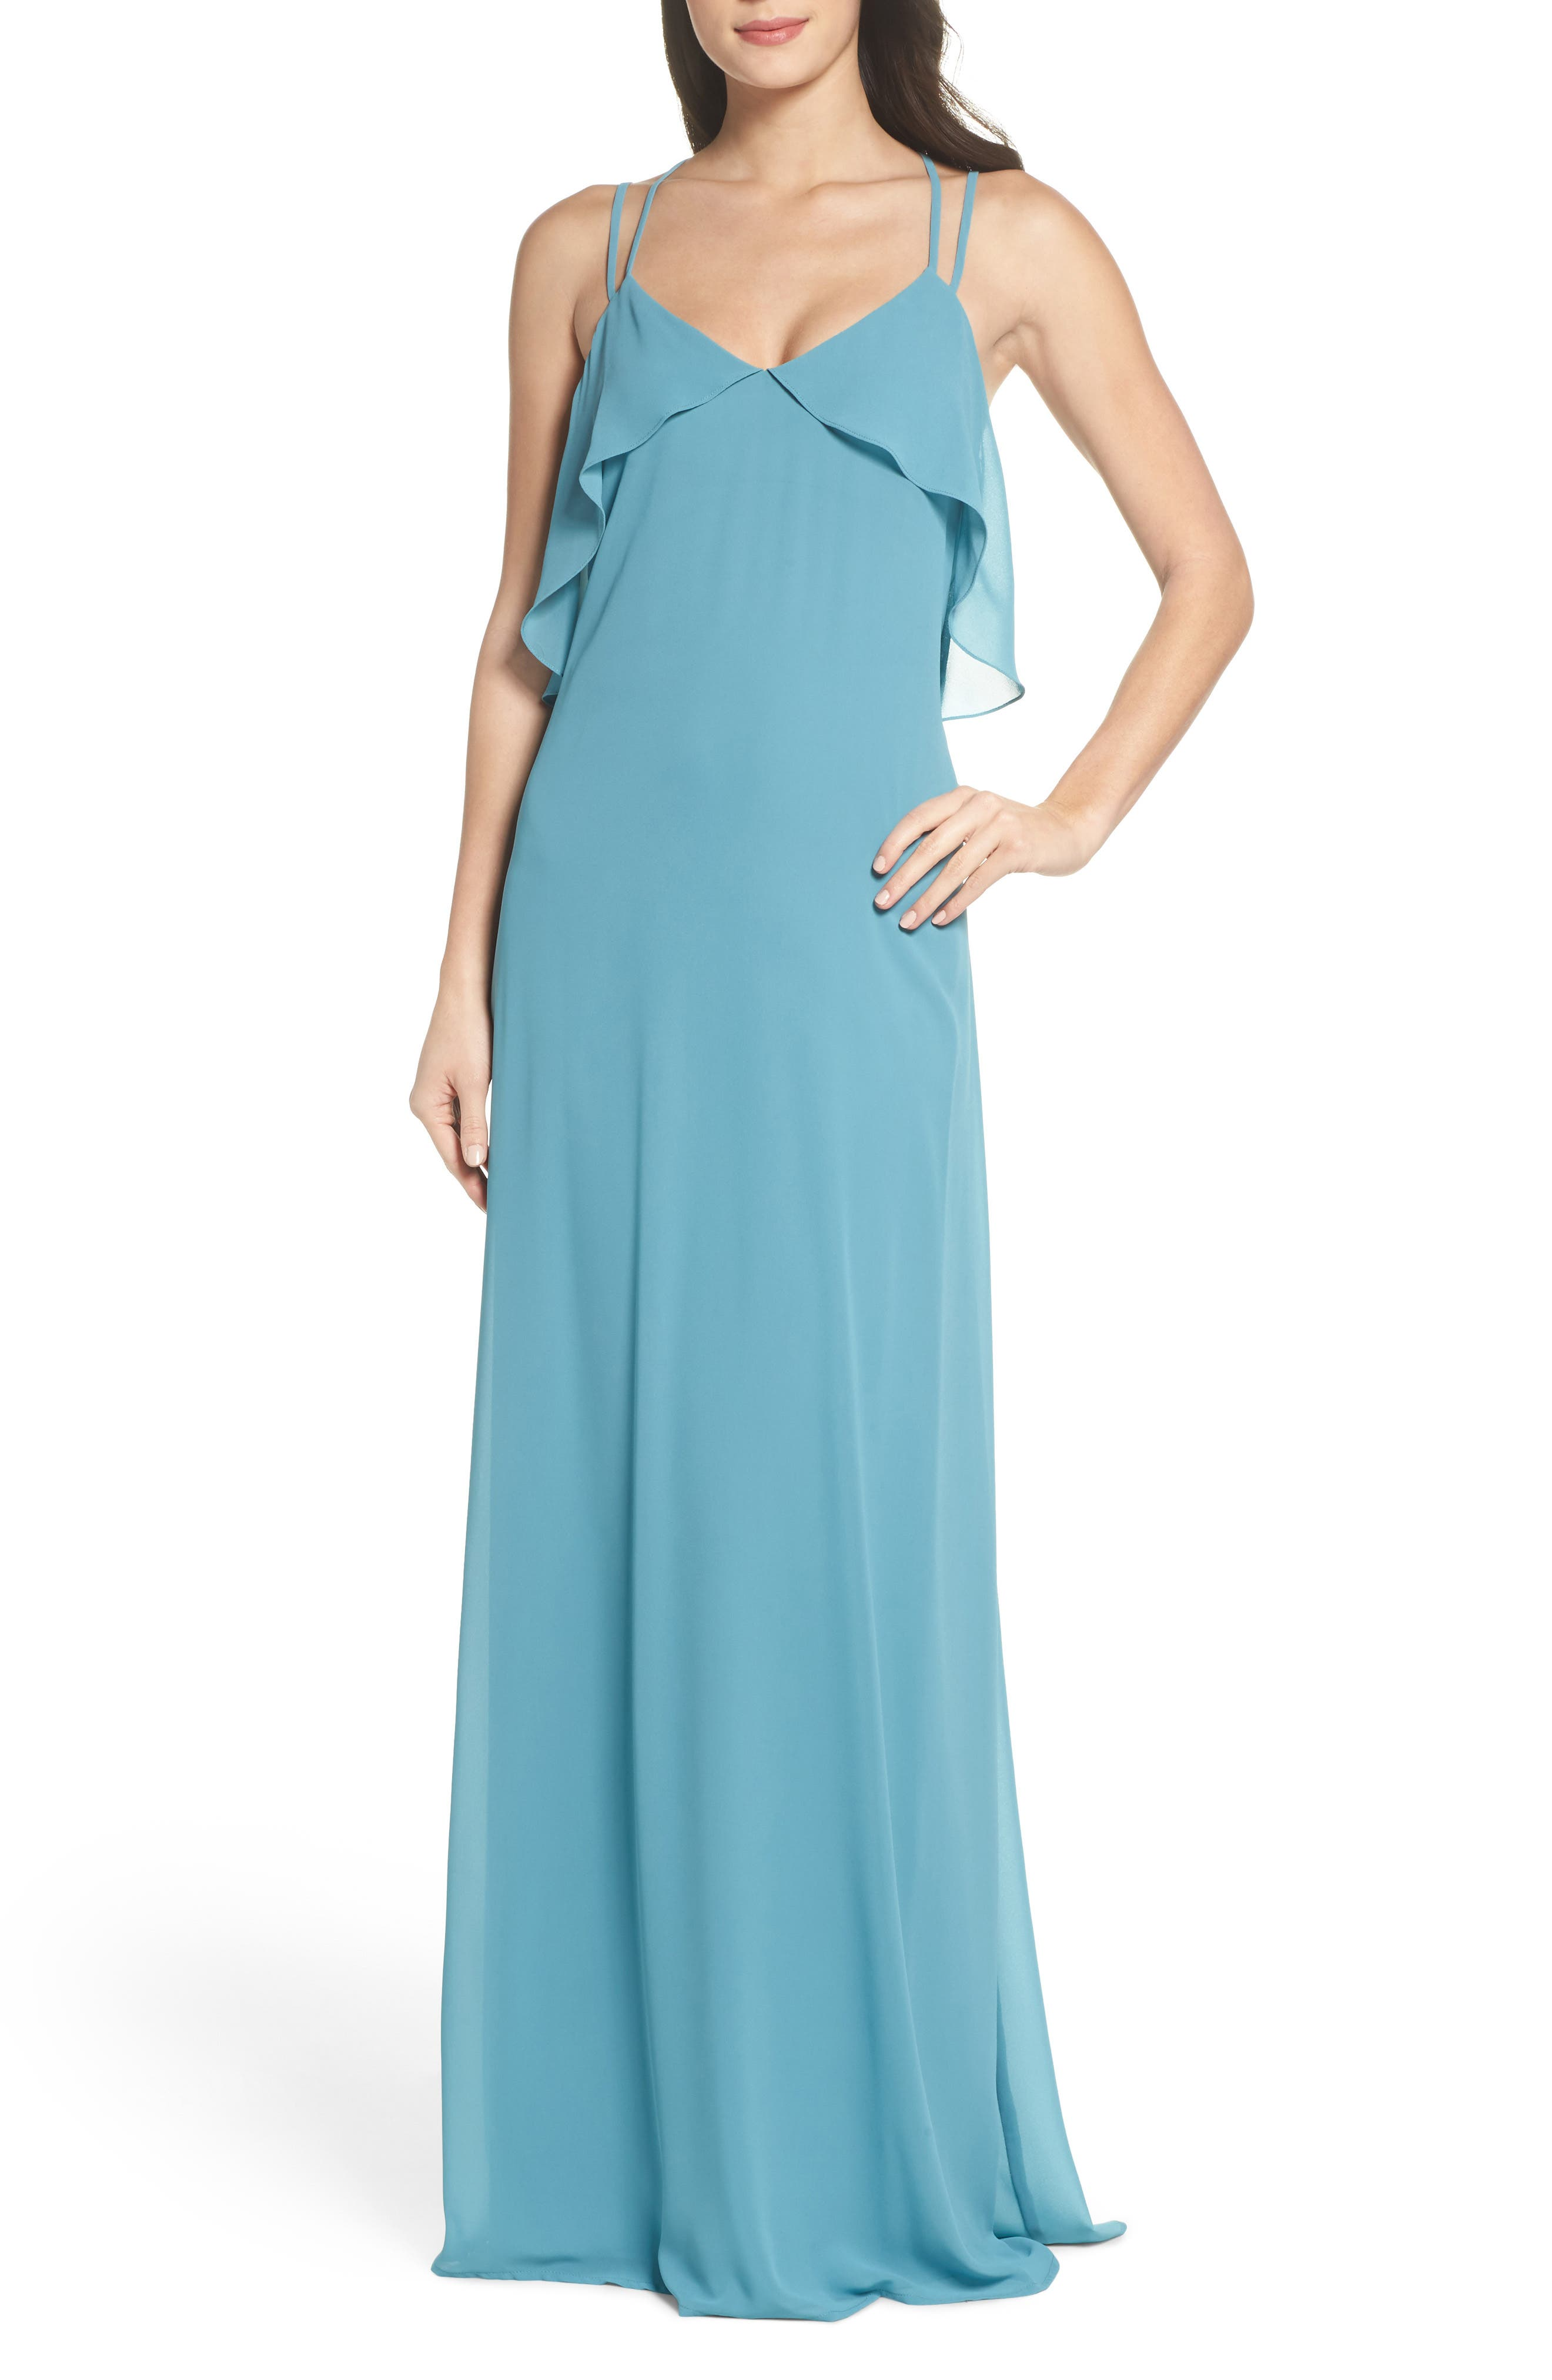 Avery Strappy Ruffle V-Neck Gown,                             Main thumbnail 1, color,                             Teal